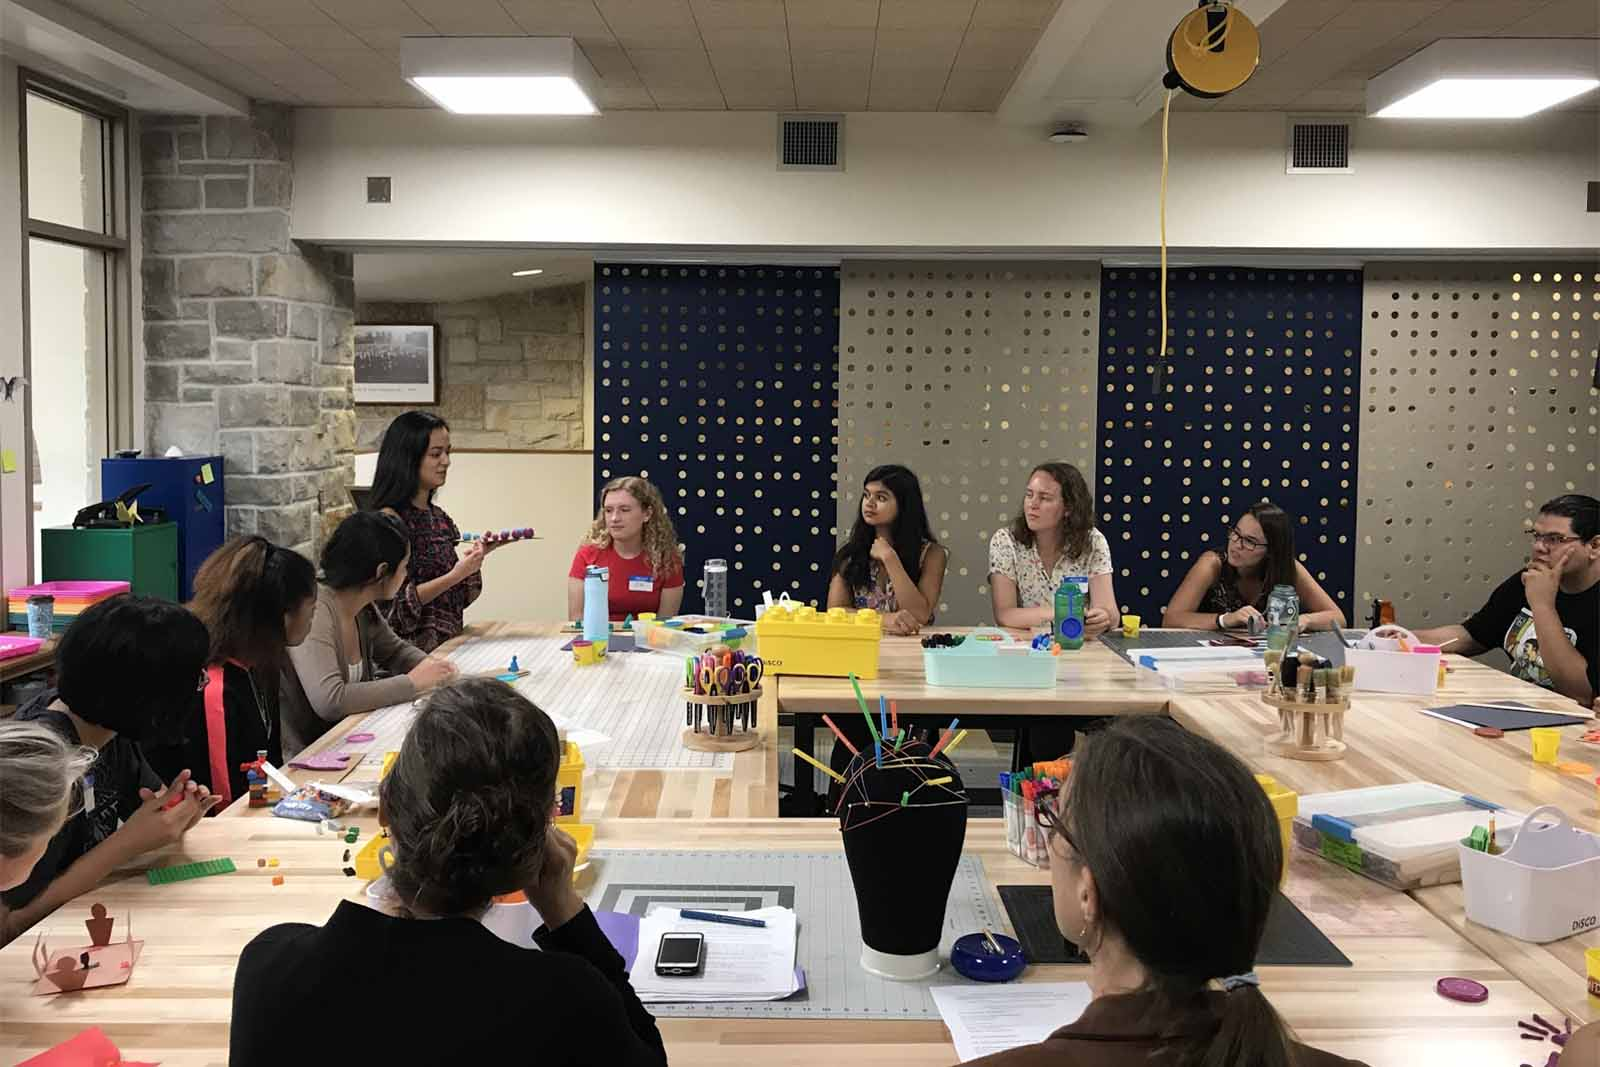 The training with the Writing and Research Tutors in the Makerspace.